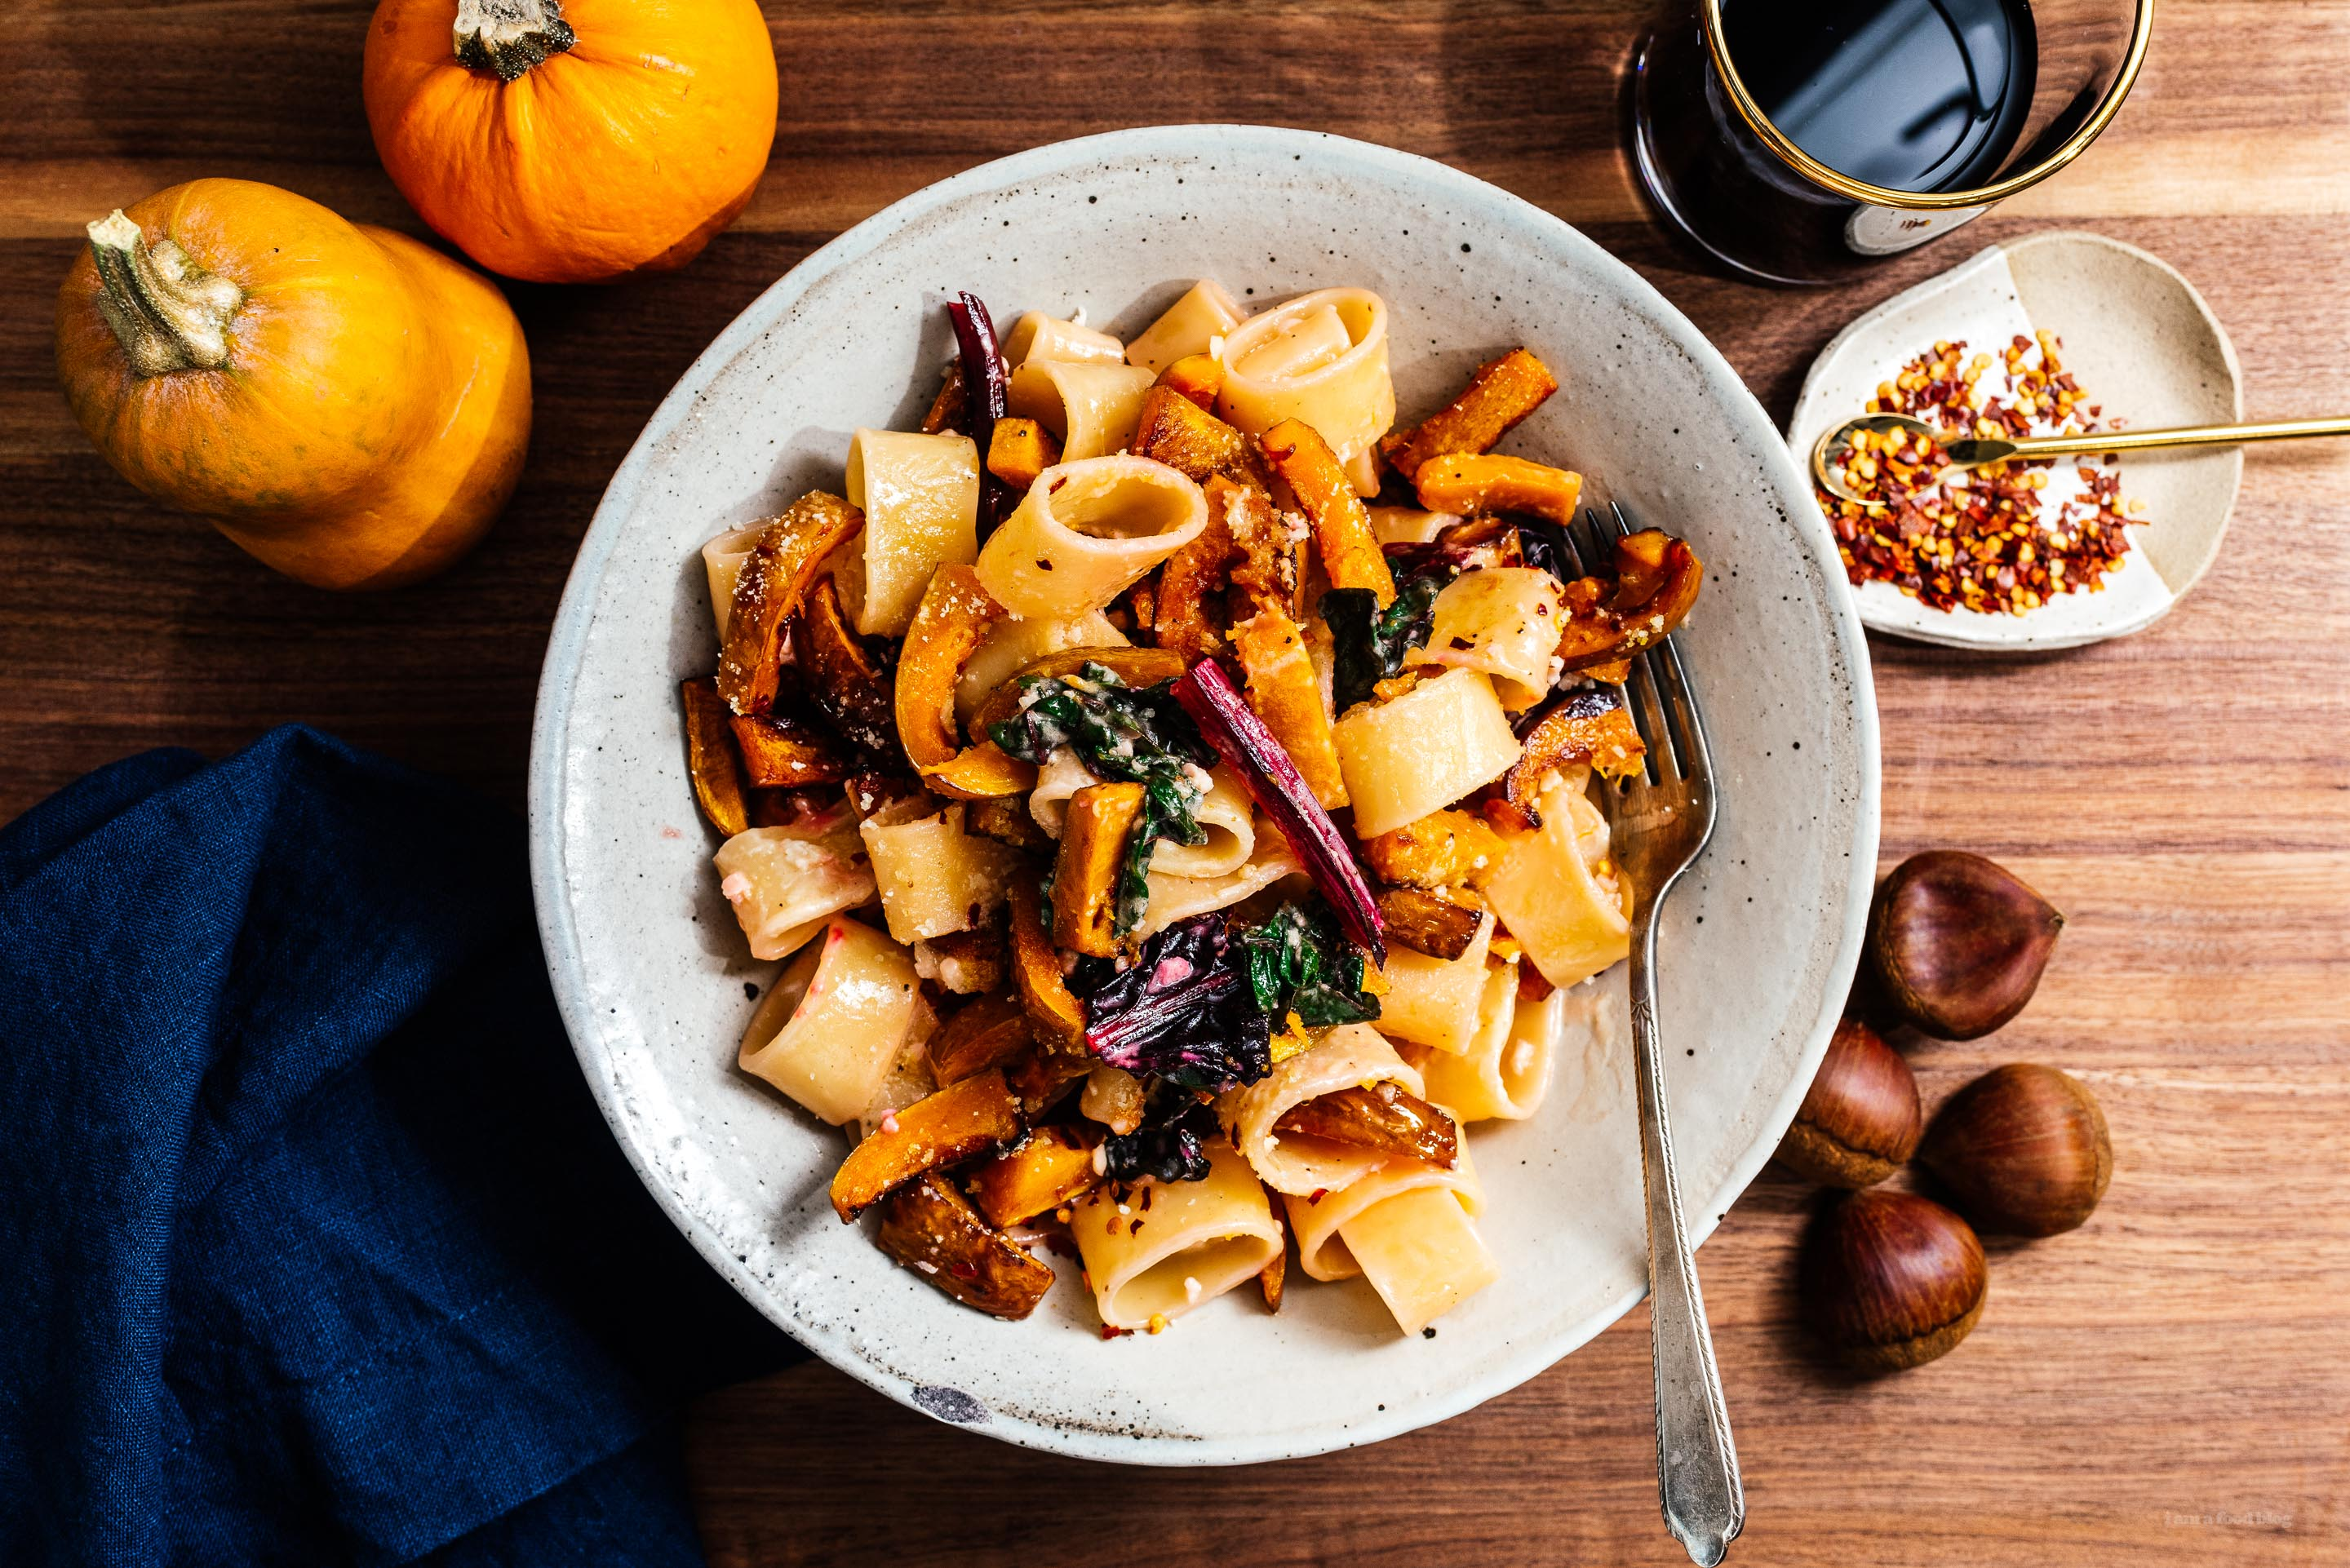 Pan-Roasted Honeynut Squash with Creamy Garlicky Pasta